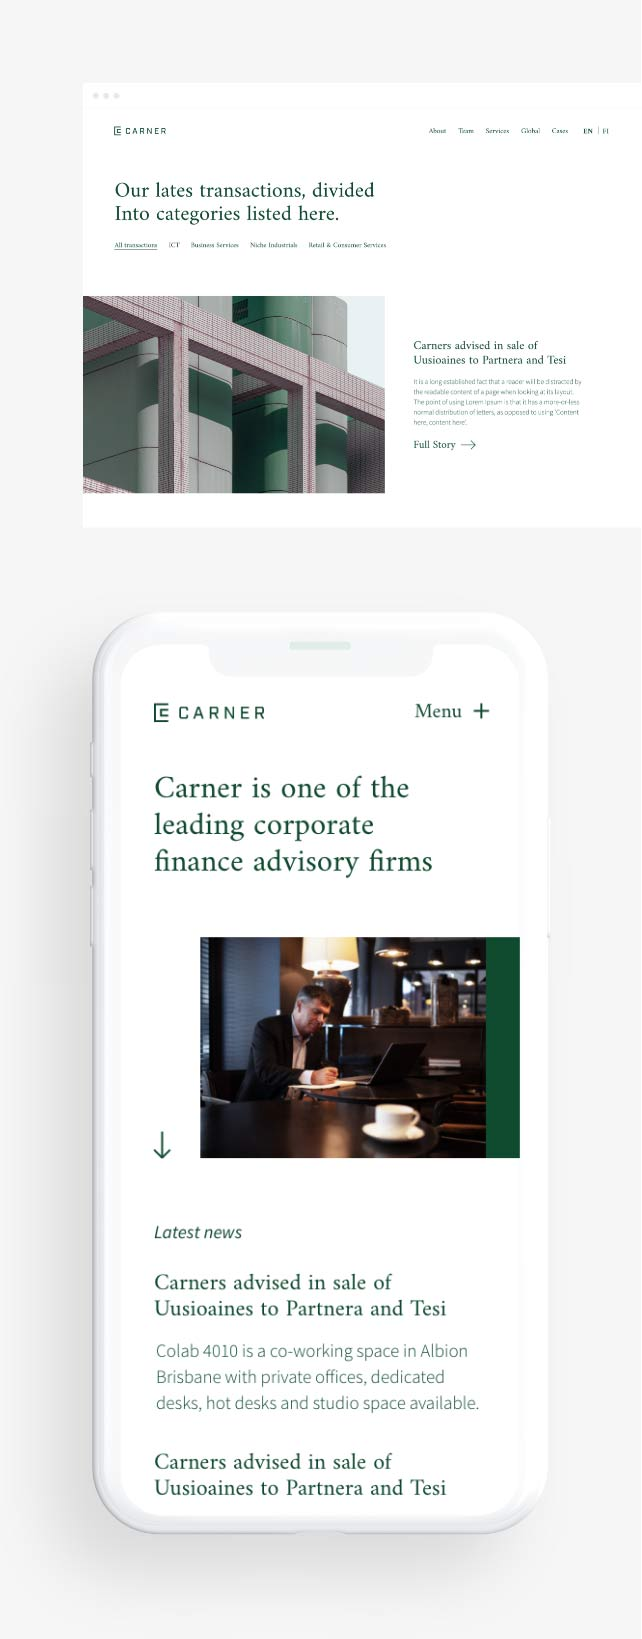 Carner desktop + mobile view